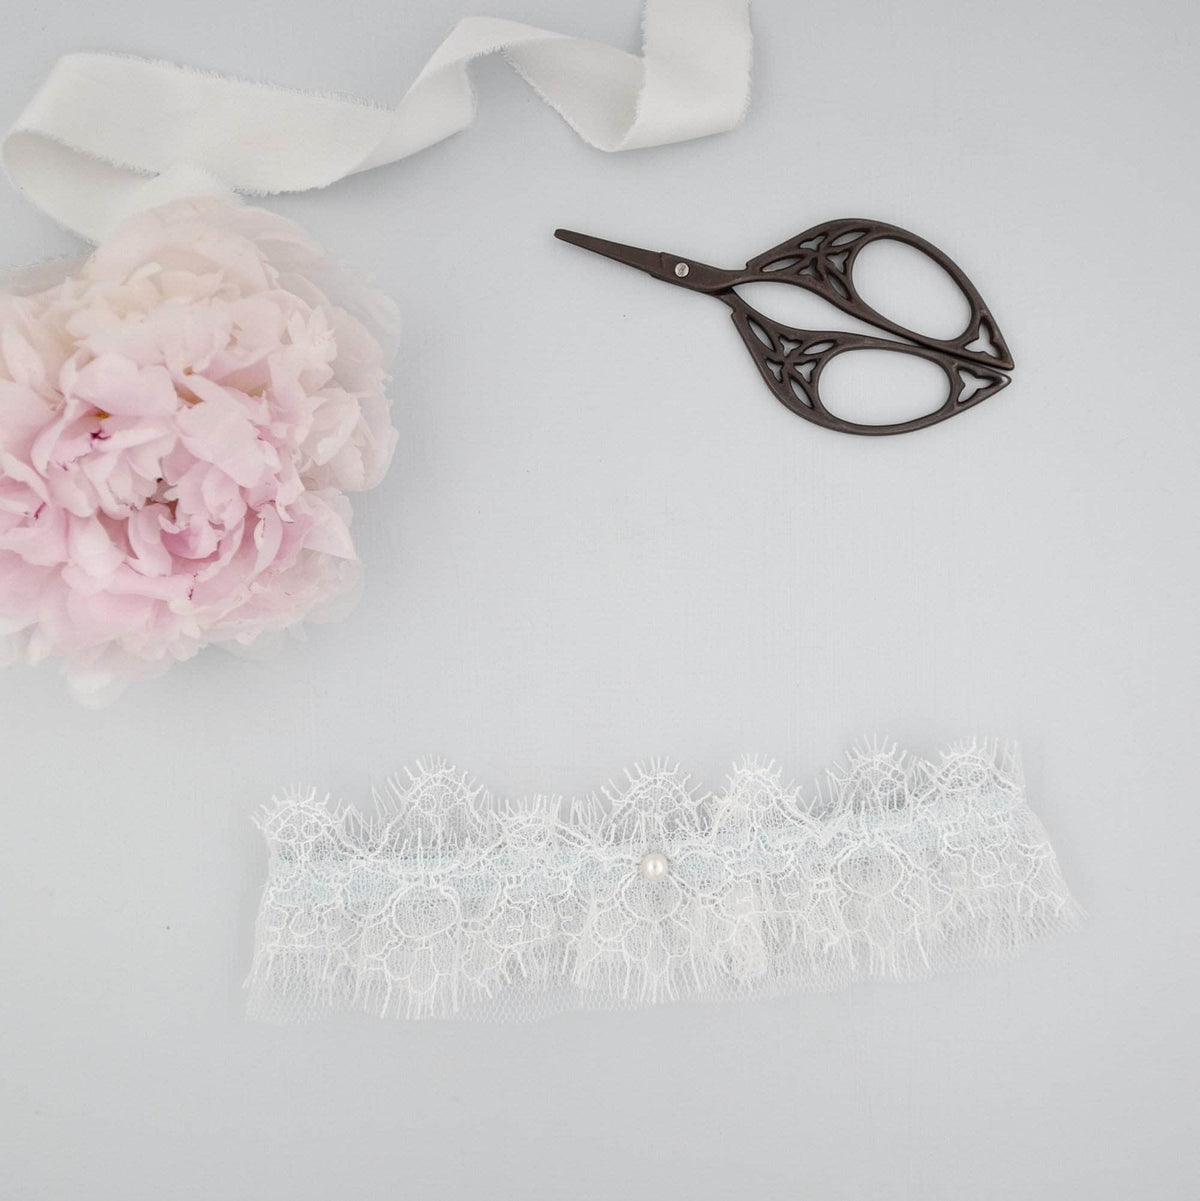 Wedding Garter Eyelash lace and 'something blue' wedding garter - 'Mia'